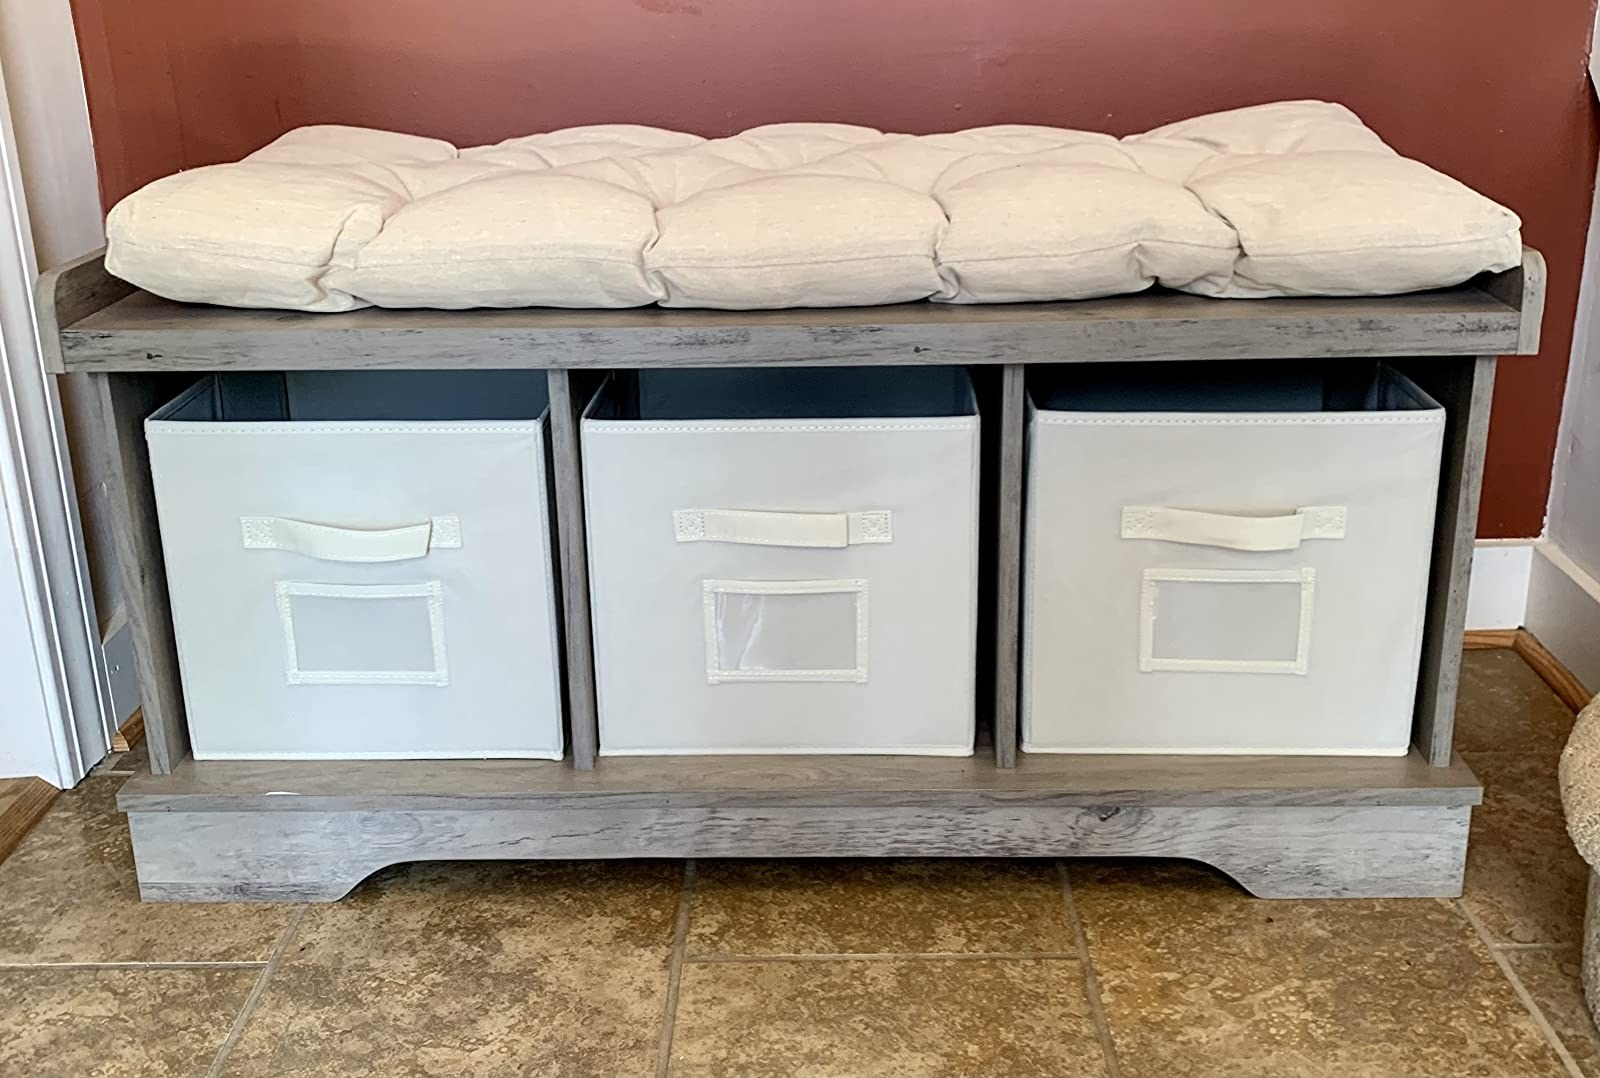 The bench with a cream-colored cushion and three matching storage bins underneath